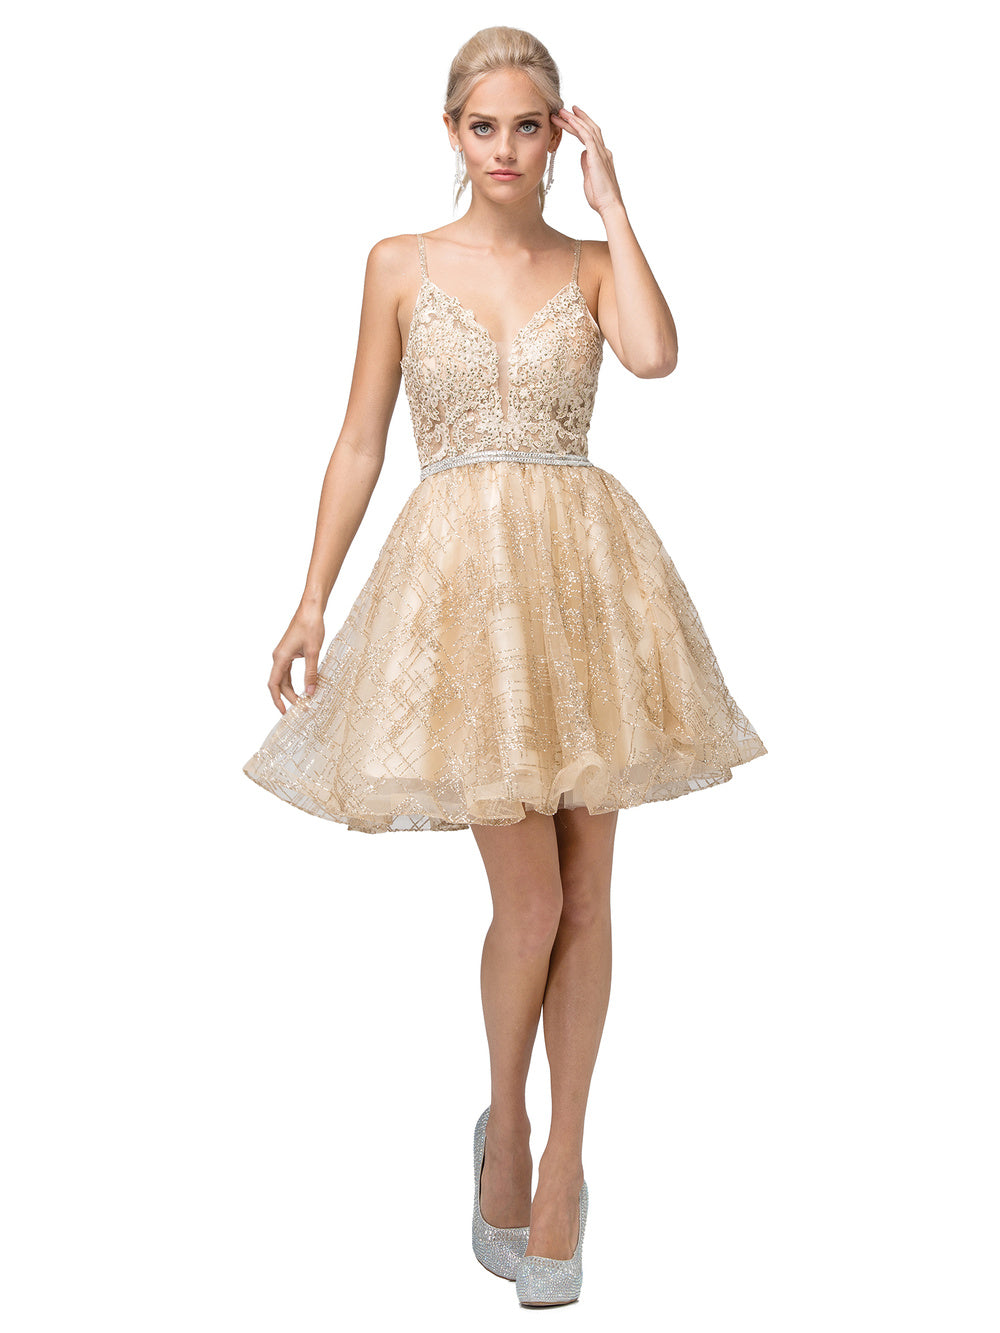 Dancing Queen DQ 3152 - Short Glitter Homecoming Dress with Lace Applique on Bodice and Beaded Belt - Diggz Prom